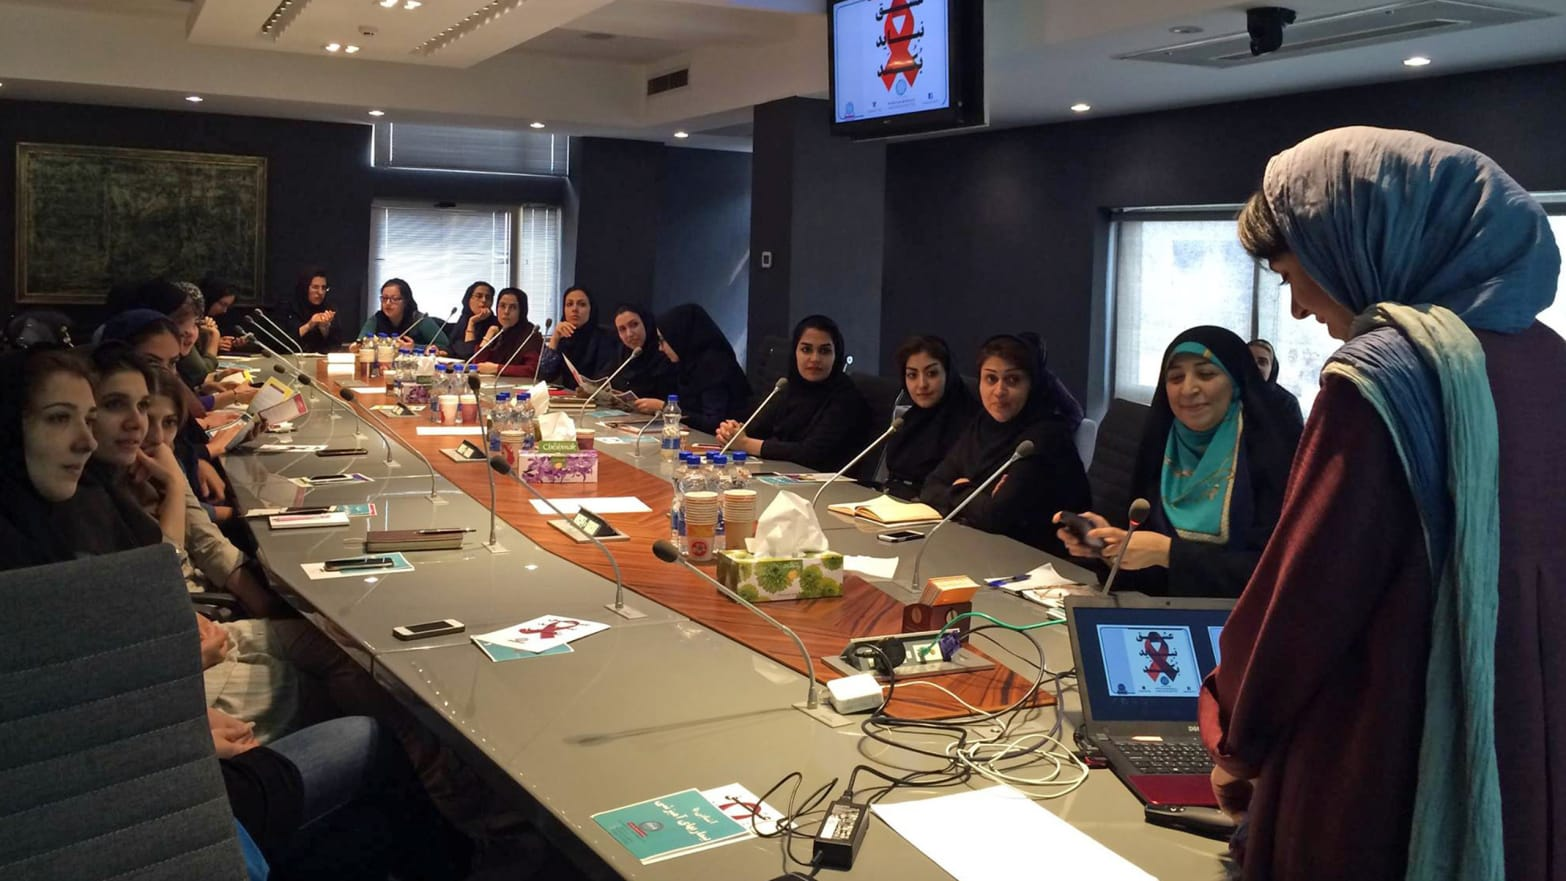 sex education ed tehran iran ctrl s rah foundation Narges Dorratoltaj Yassi Ashki